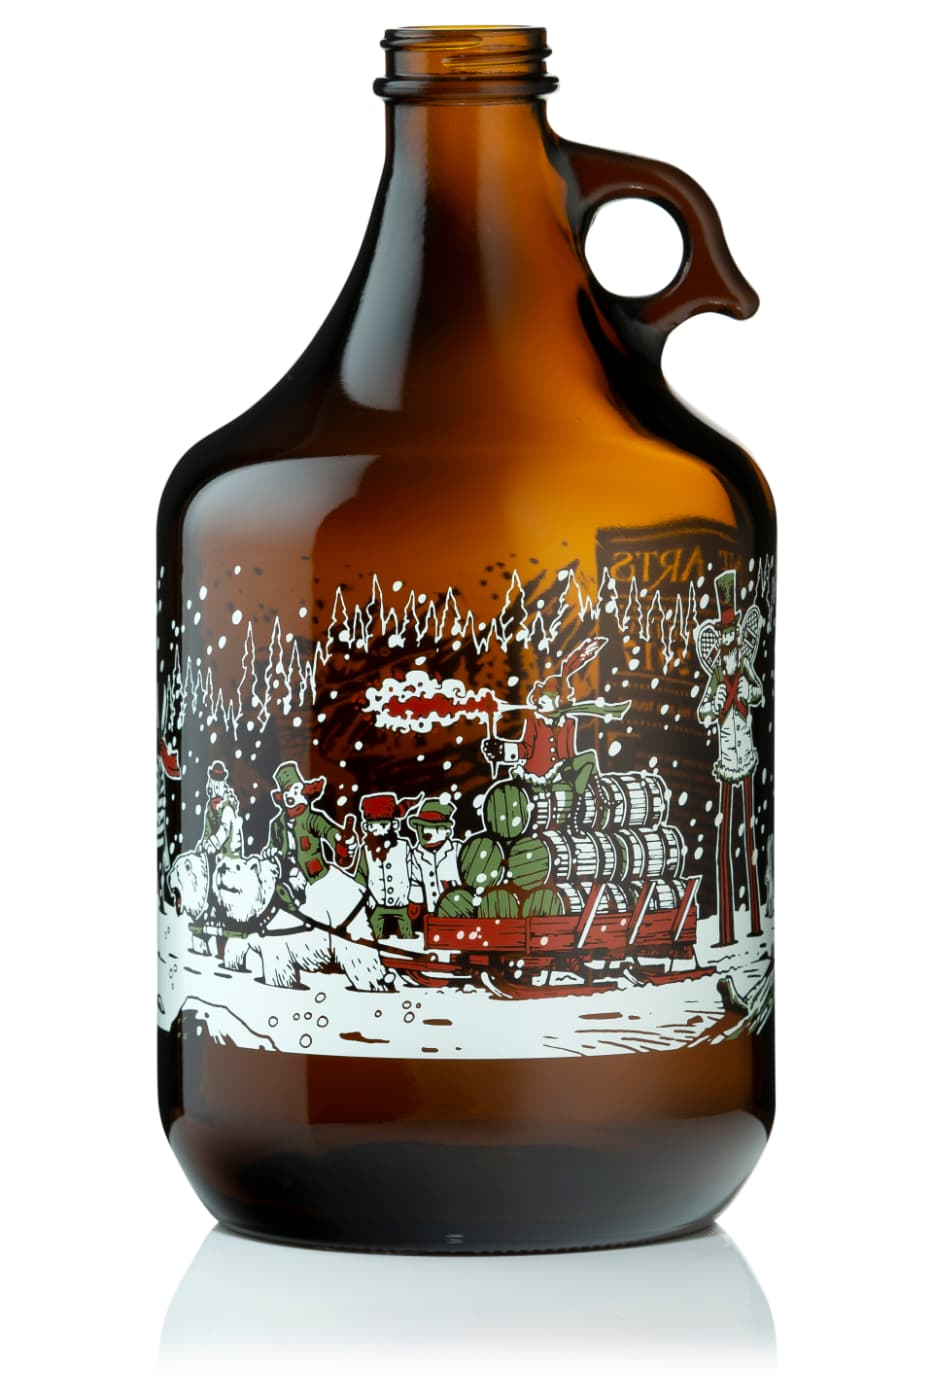 Vine Arts Growler Beer